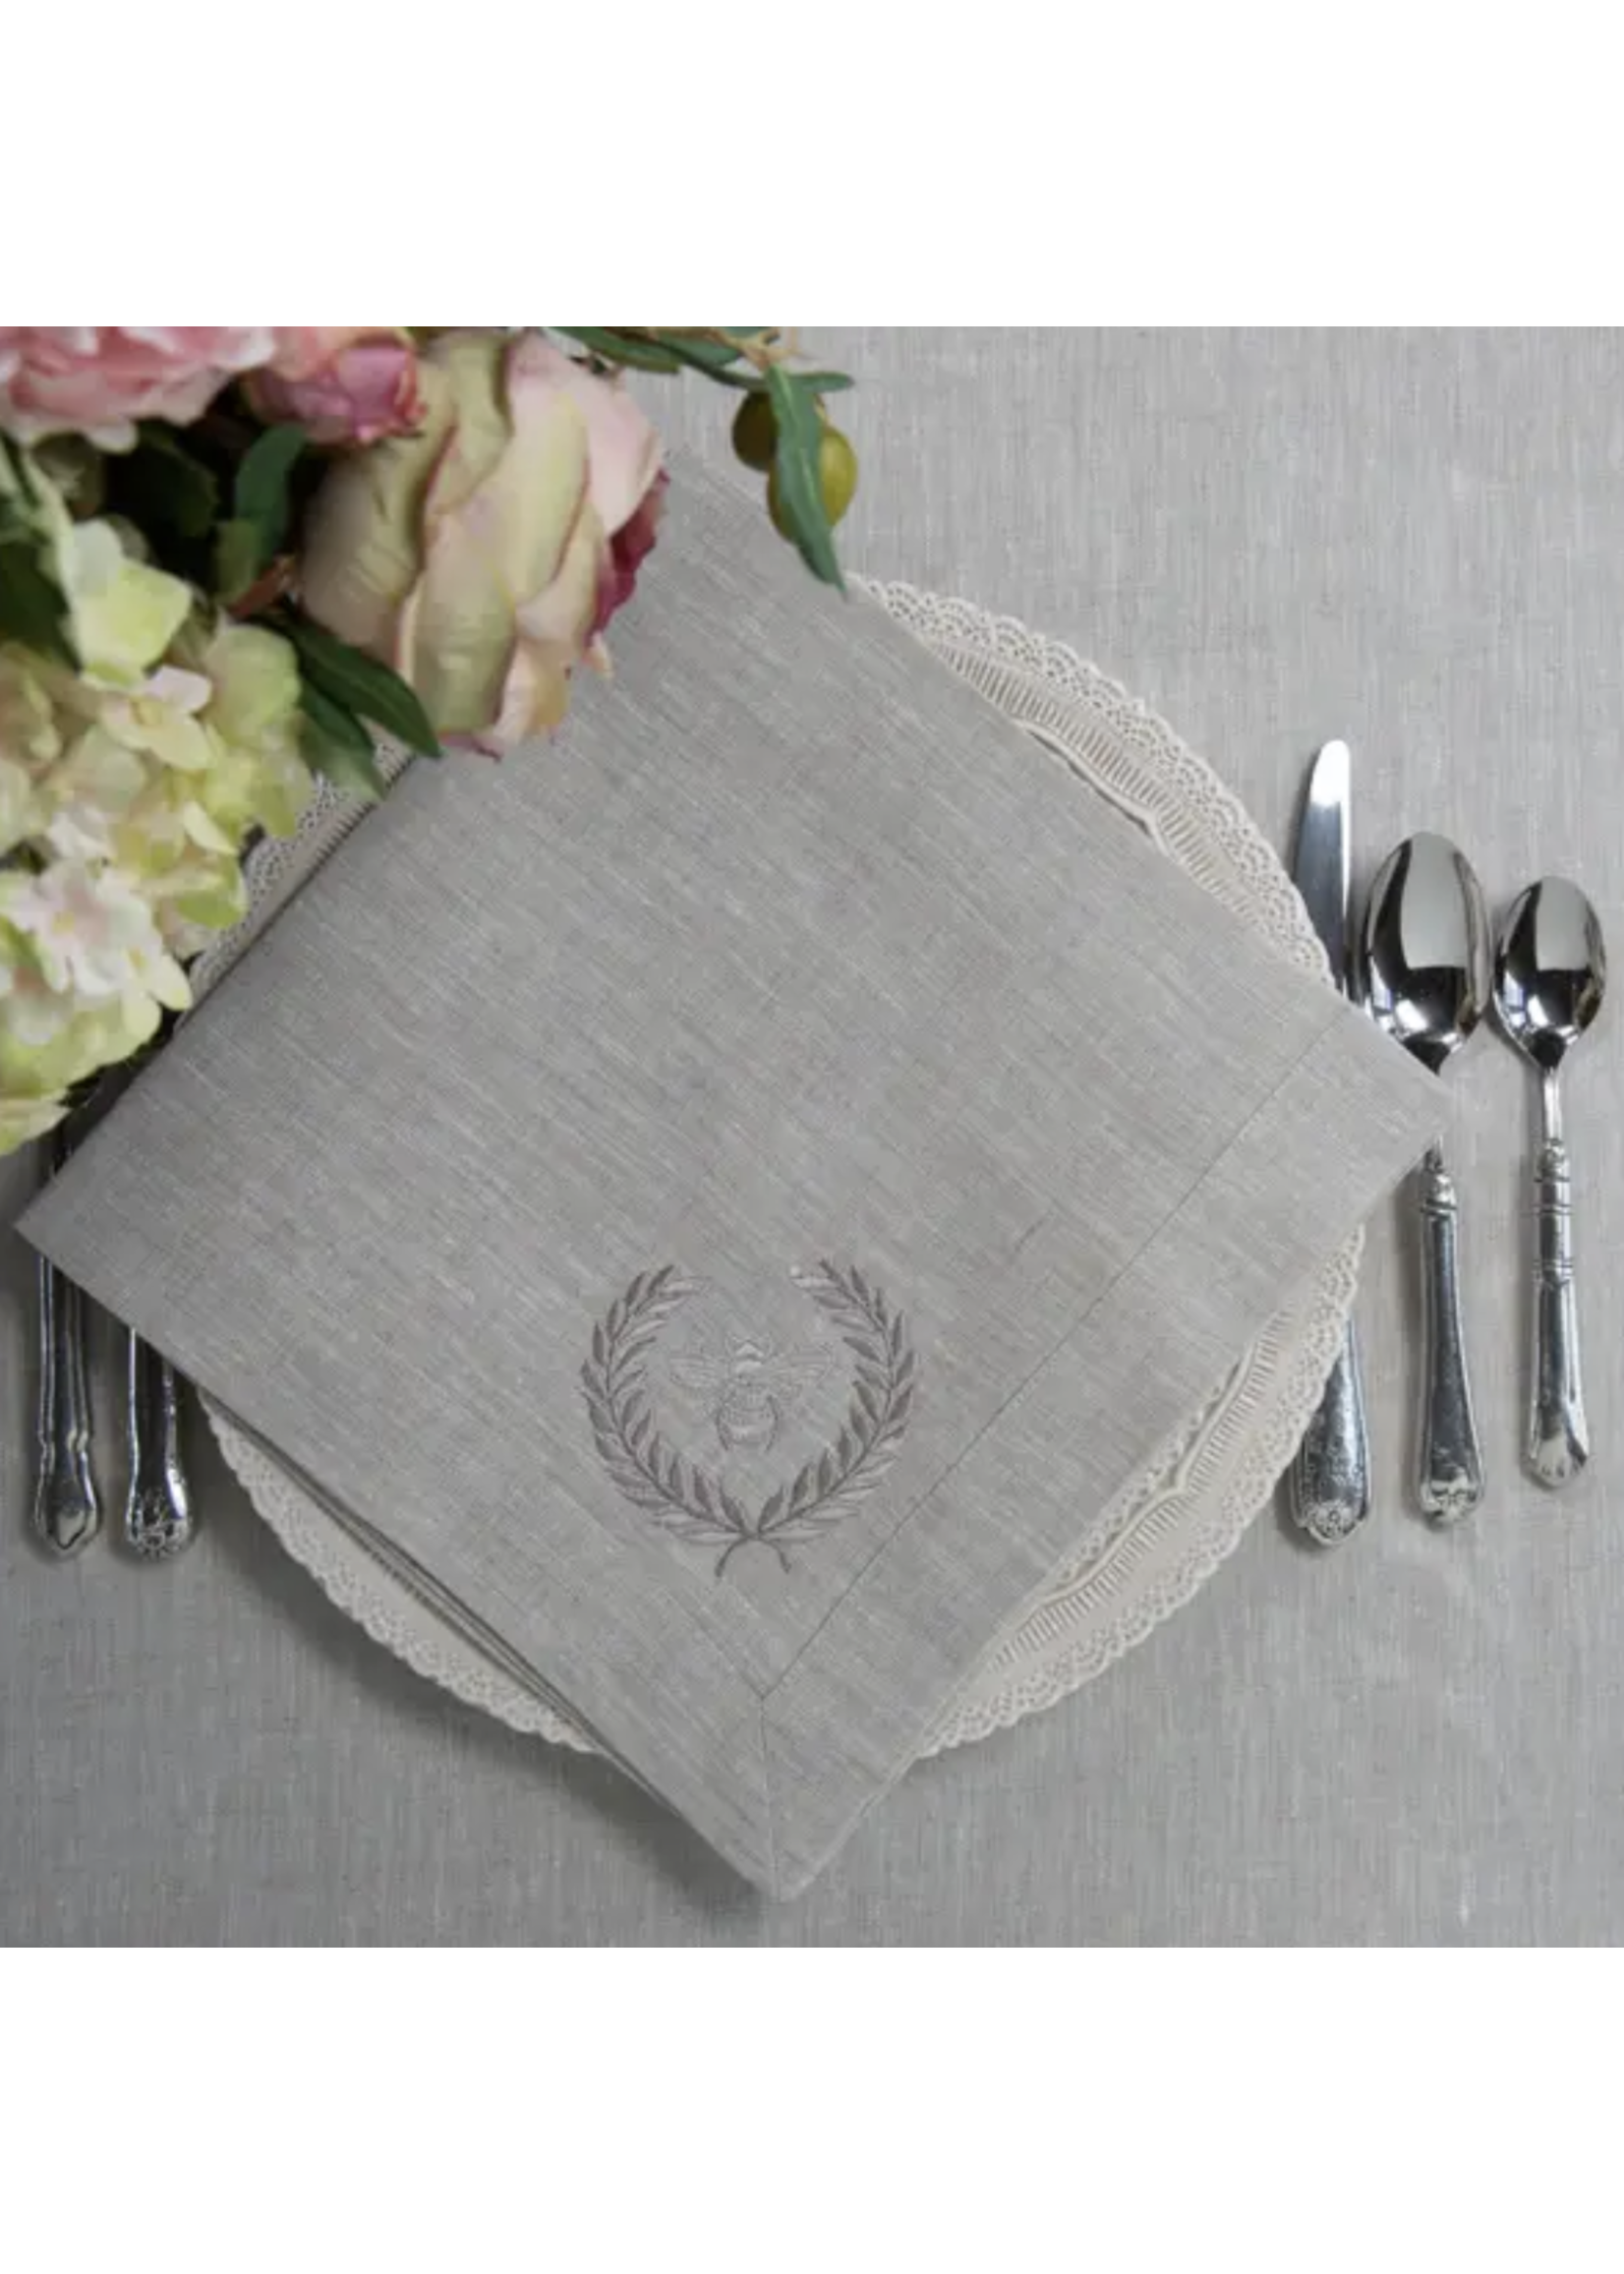 Crown Linen Napkin Large - Bumble Bee - Flax